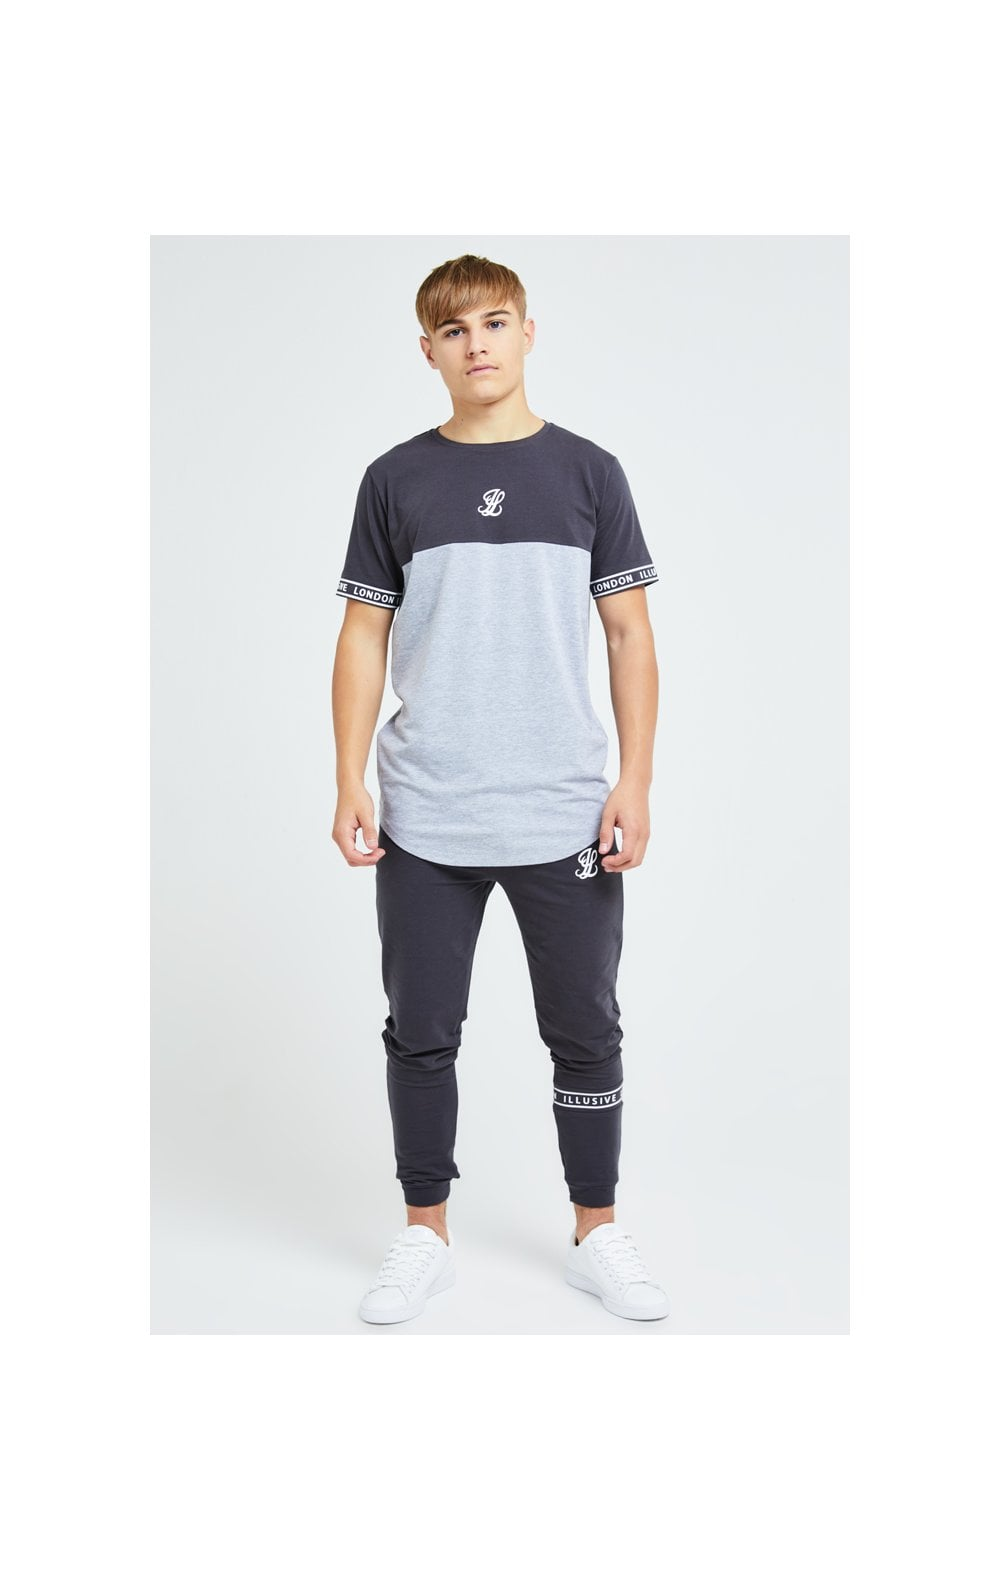 Illusive London Revere Jogger - Dark Grey & Light Grey Marl (4)